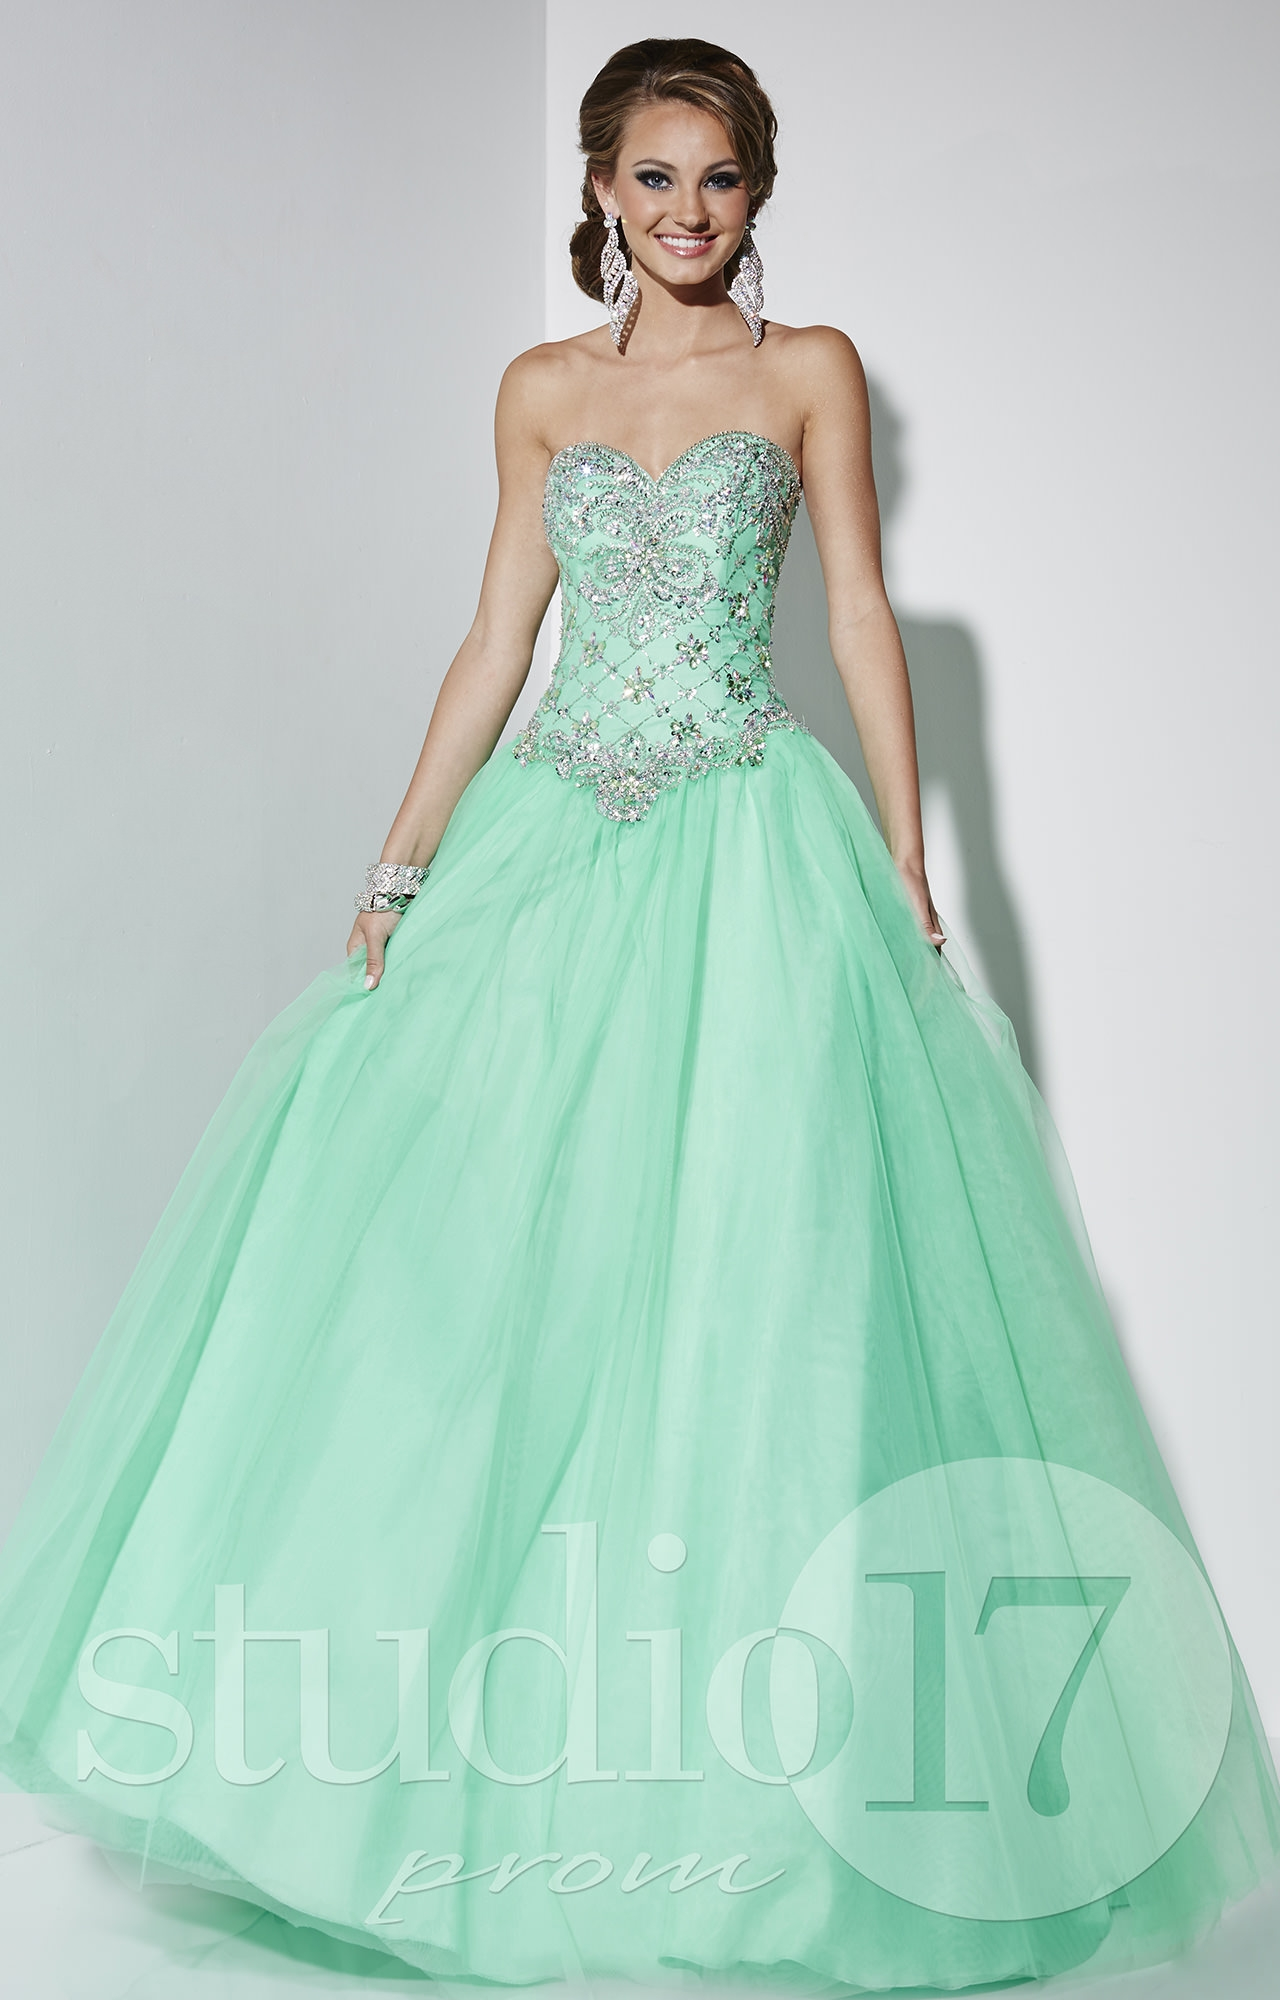 Studio 17 12567 - Queen of It All Gown Prom Dress